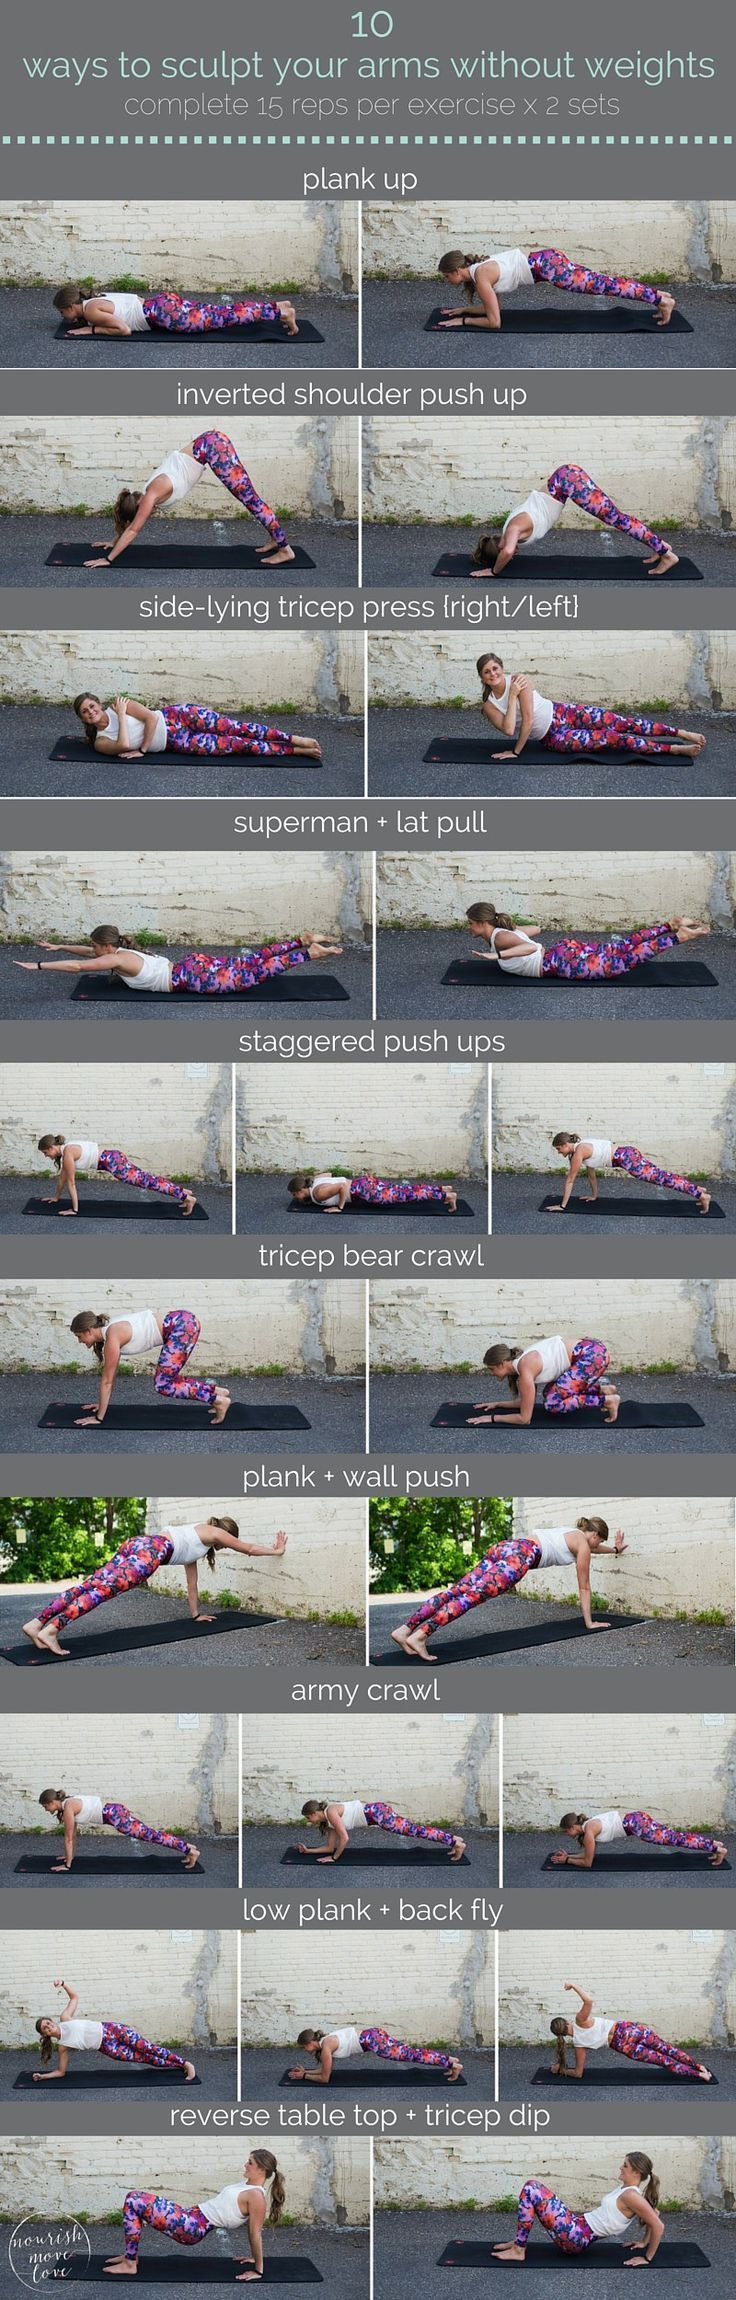 10 ways to sculpt your arms without weights | sculpt seriously strong arms with these 10 equipment-free, upper body exercises you can do anywhere. | http://www.nourishmovelove.com